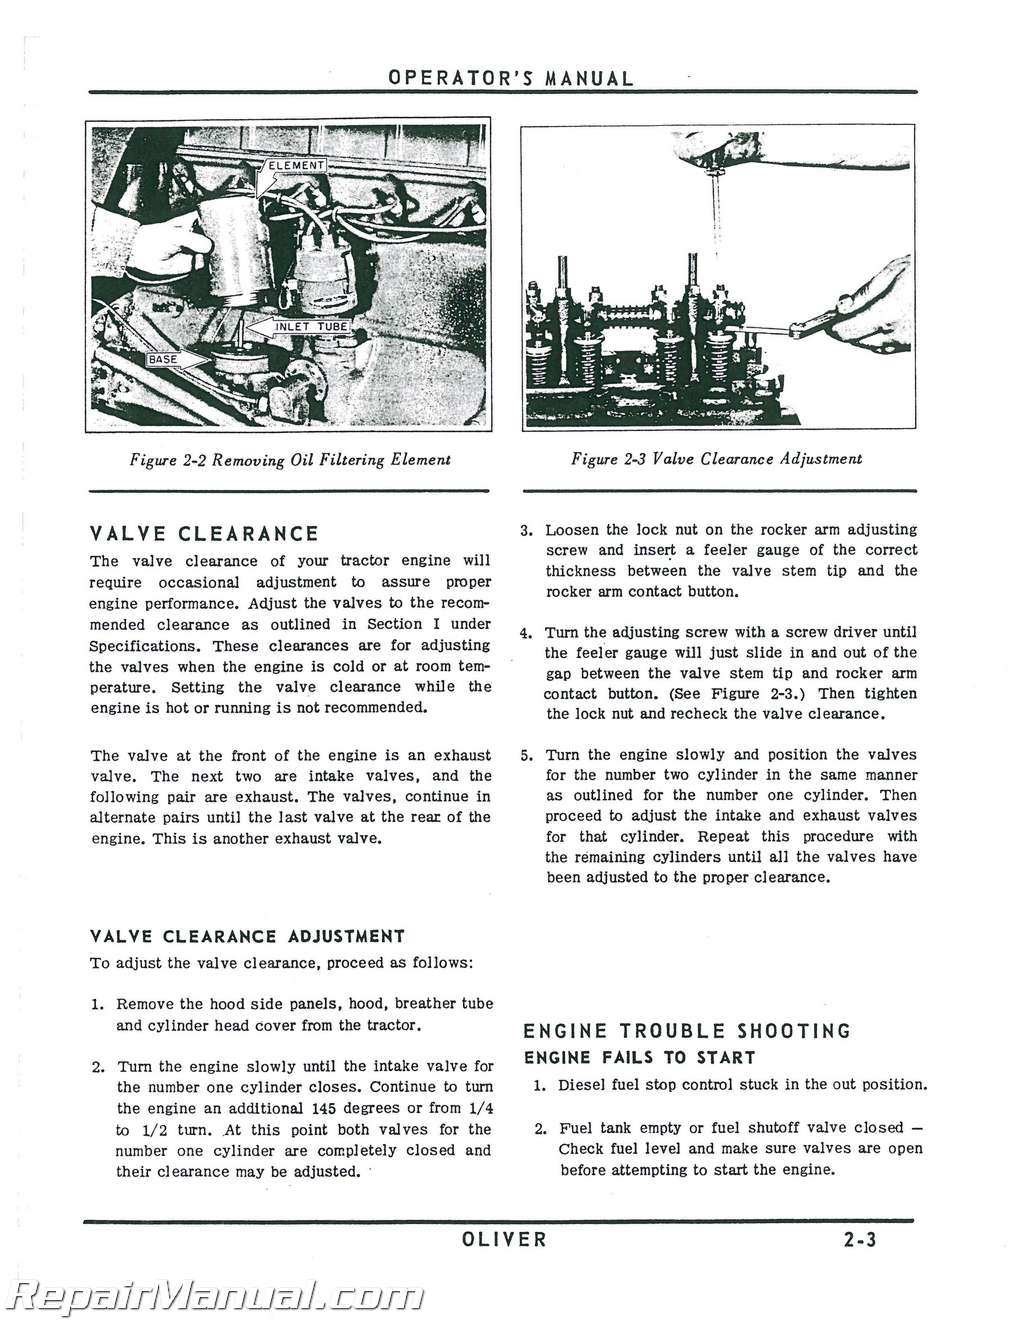 Oliver Model 770 and 880 Operators Manual